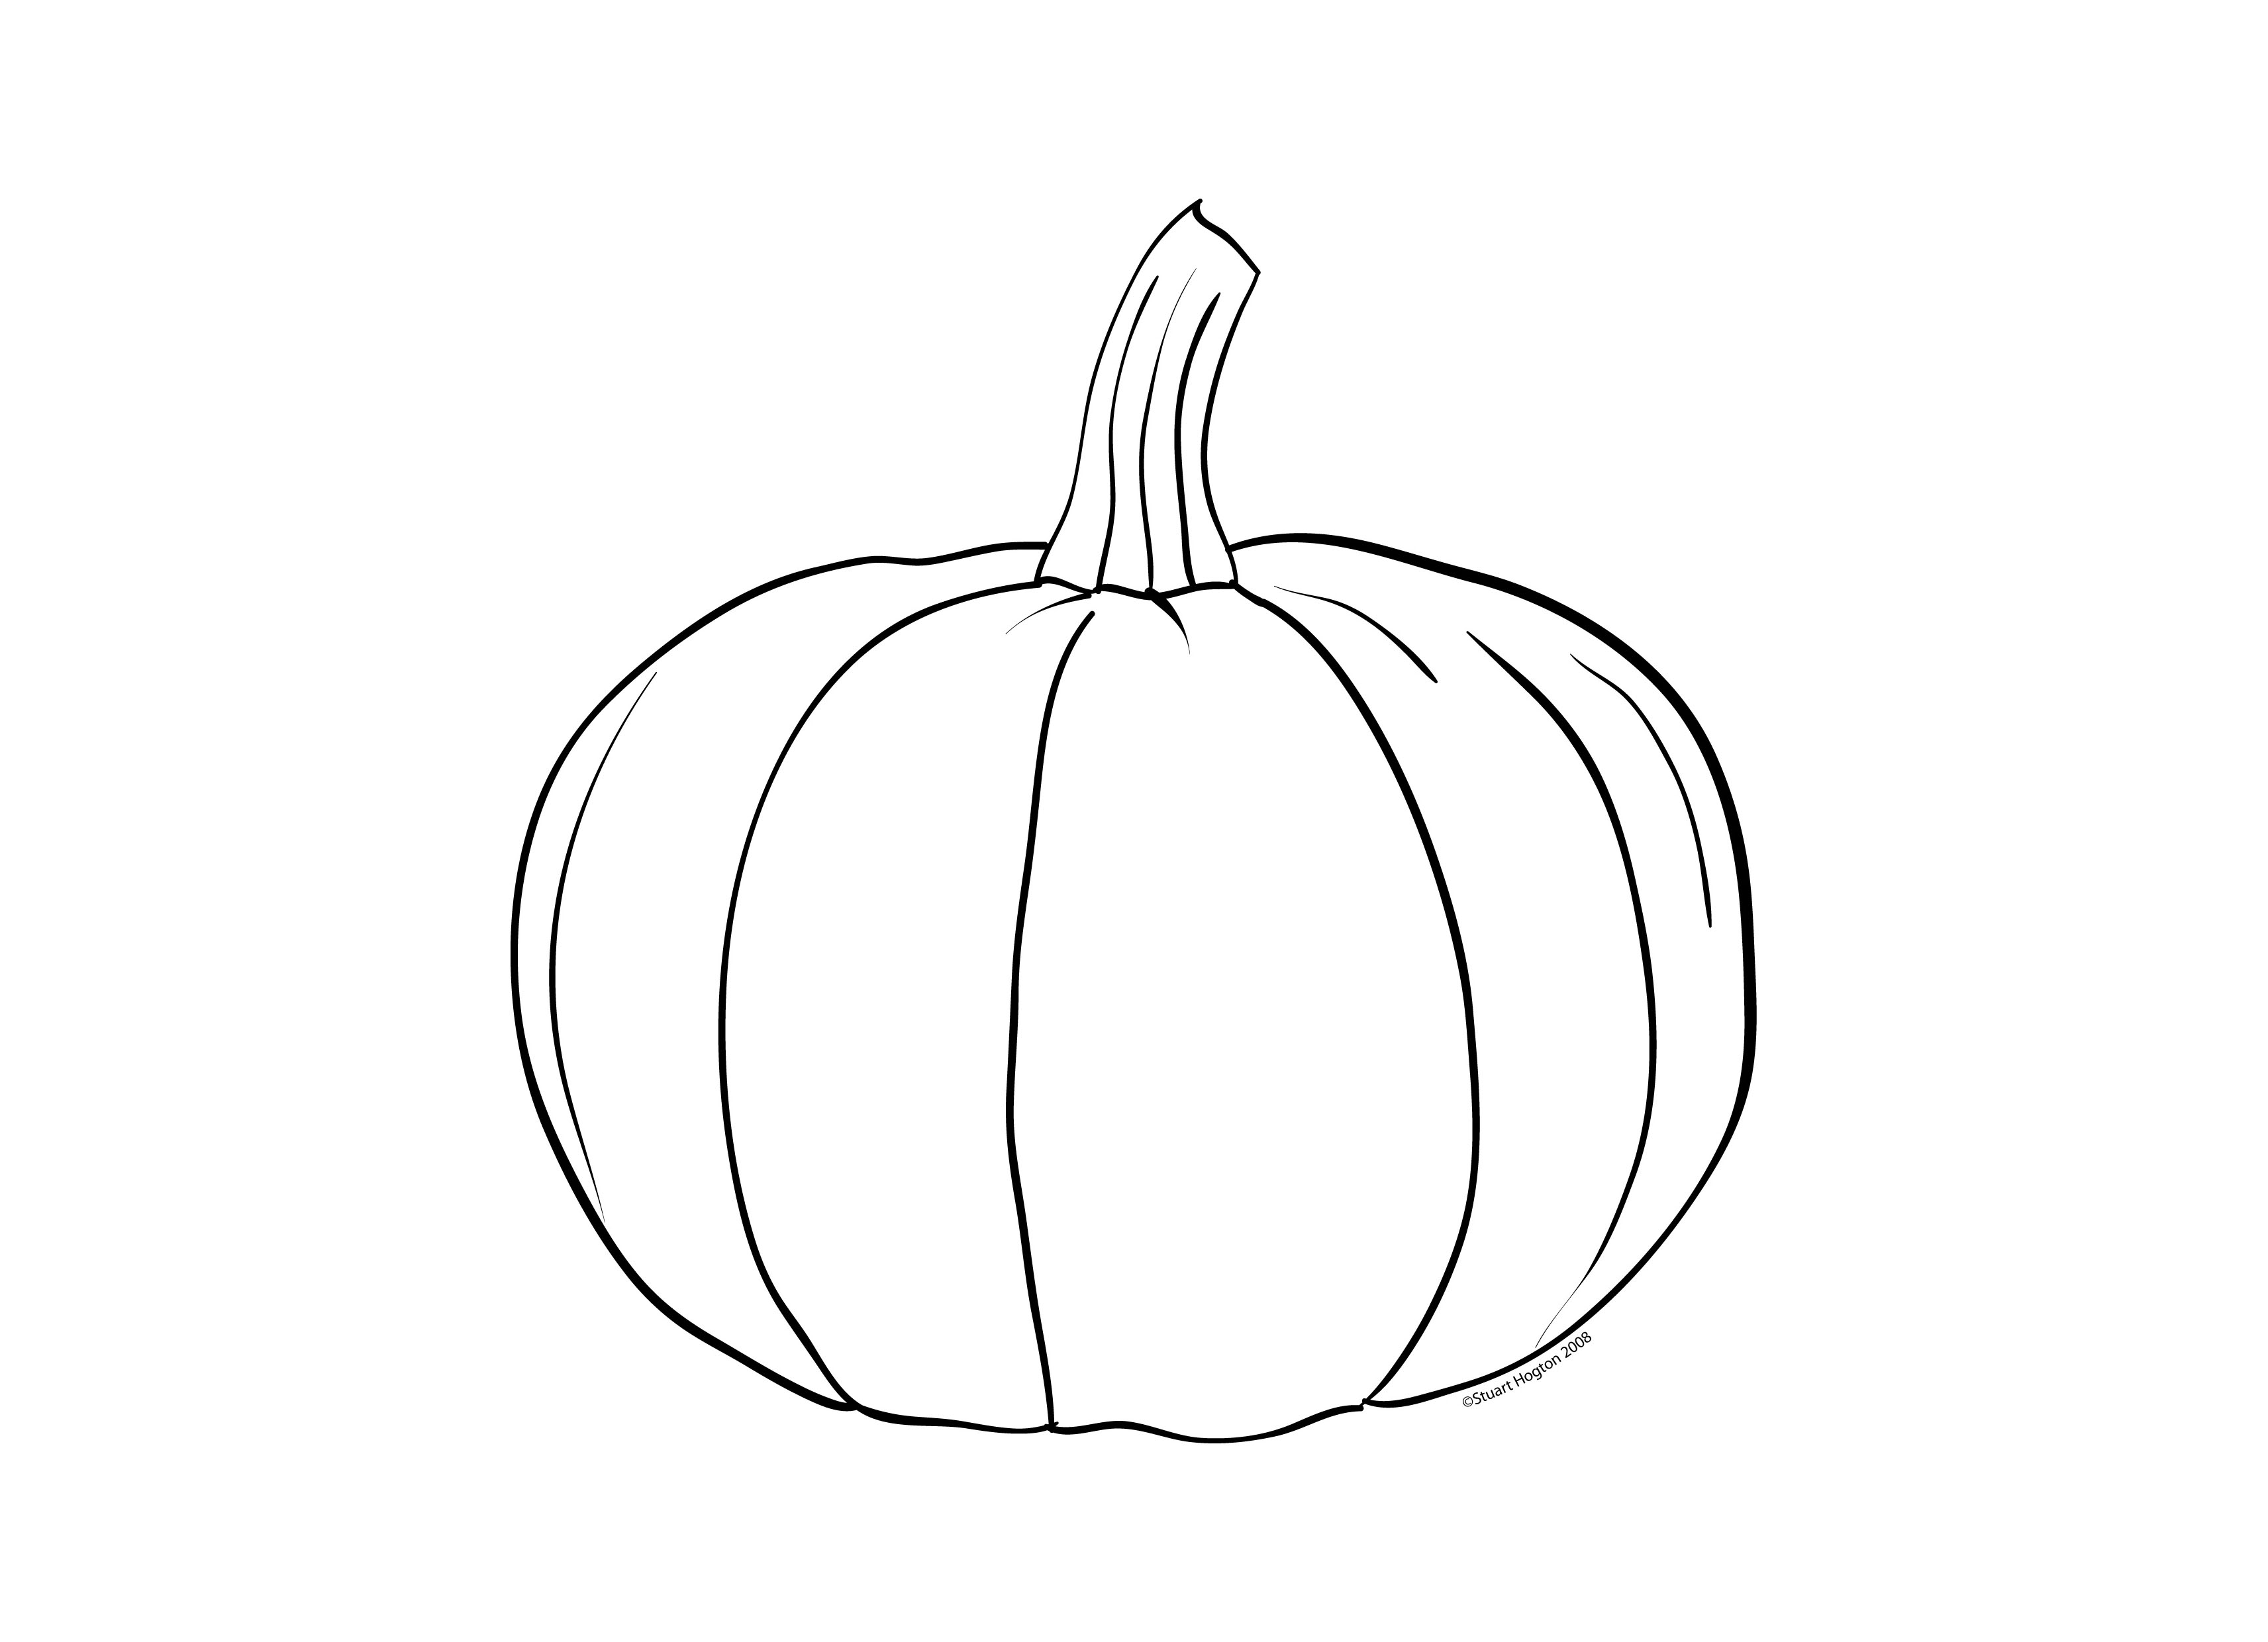 coloring pumpkin halloween clipart halloween pumpkin coloring pages for kids halloween clipart coloring pumpkin